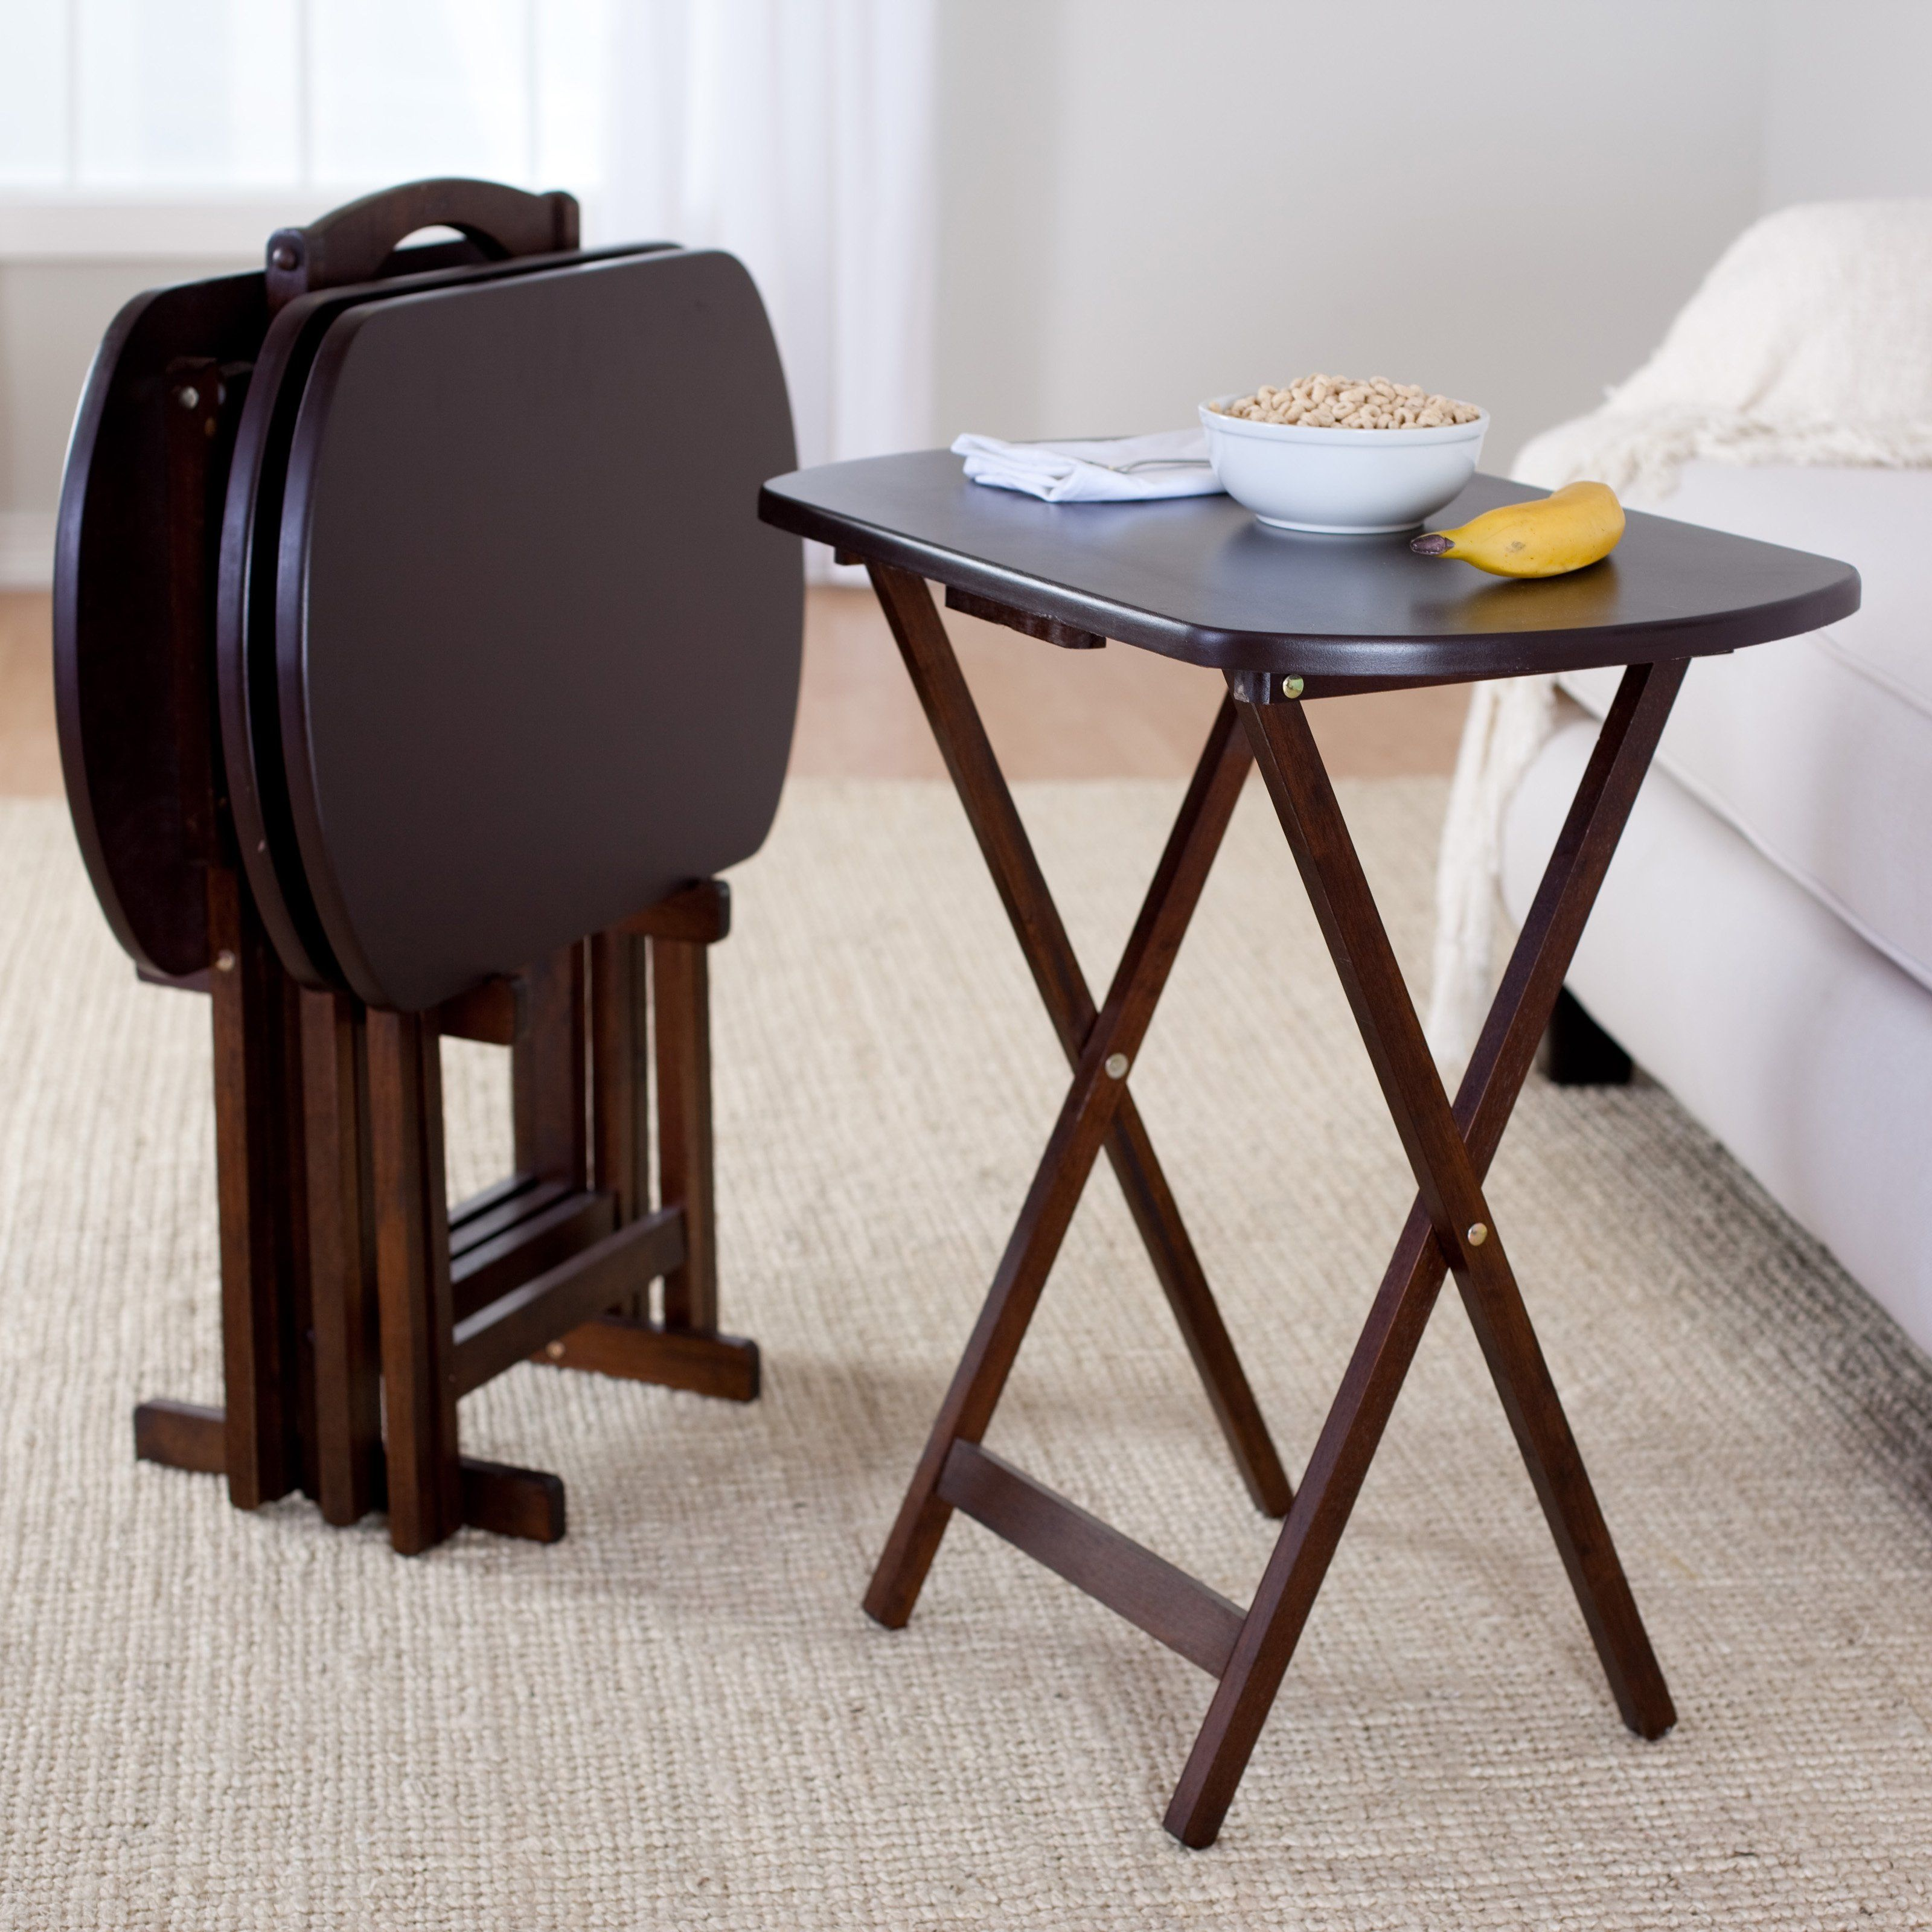 Winsome 5-Piece Oblong TV Table Set - Every home needs a TV tray set ...